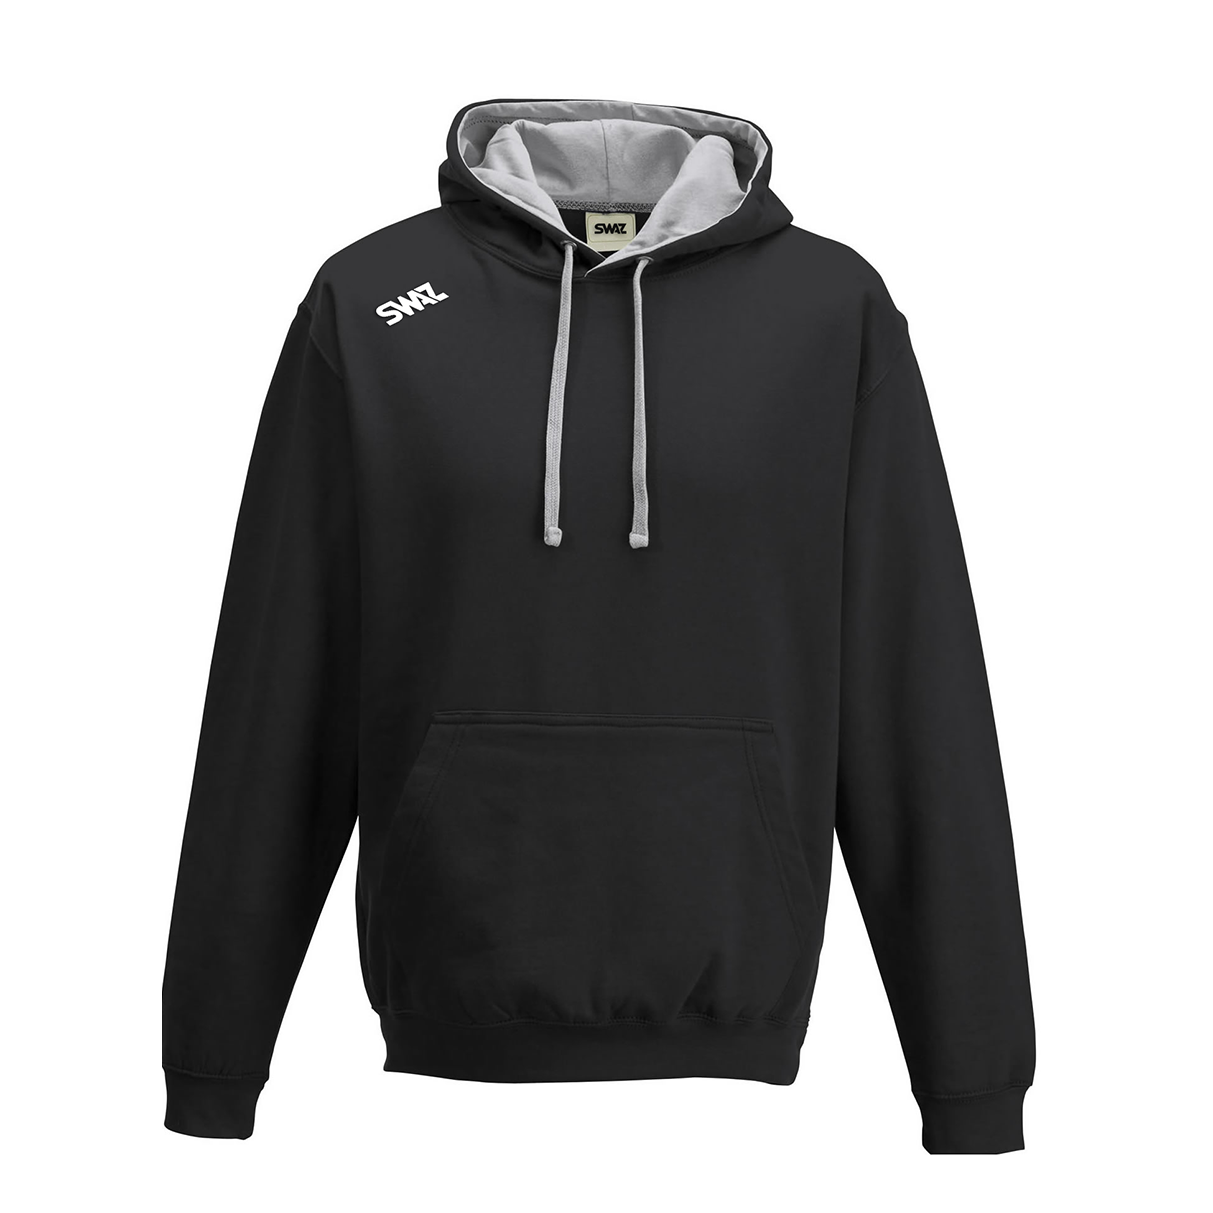 SWAZ Club Hoody – Black/Grey